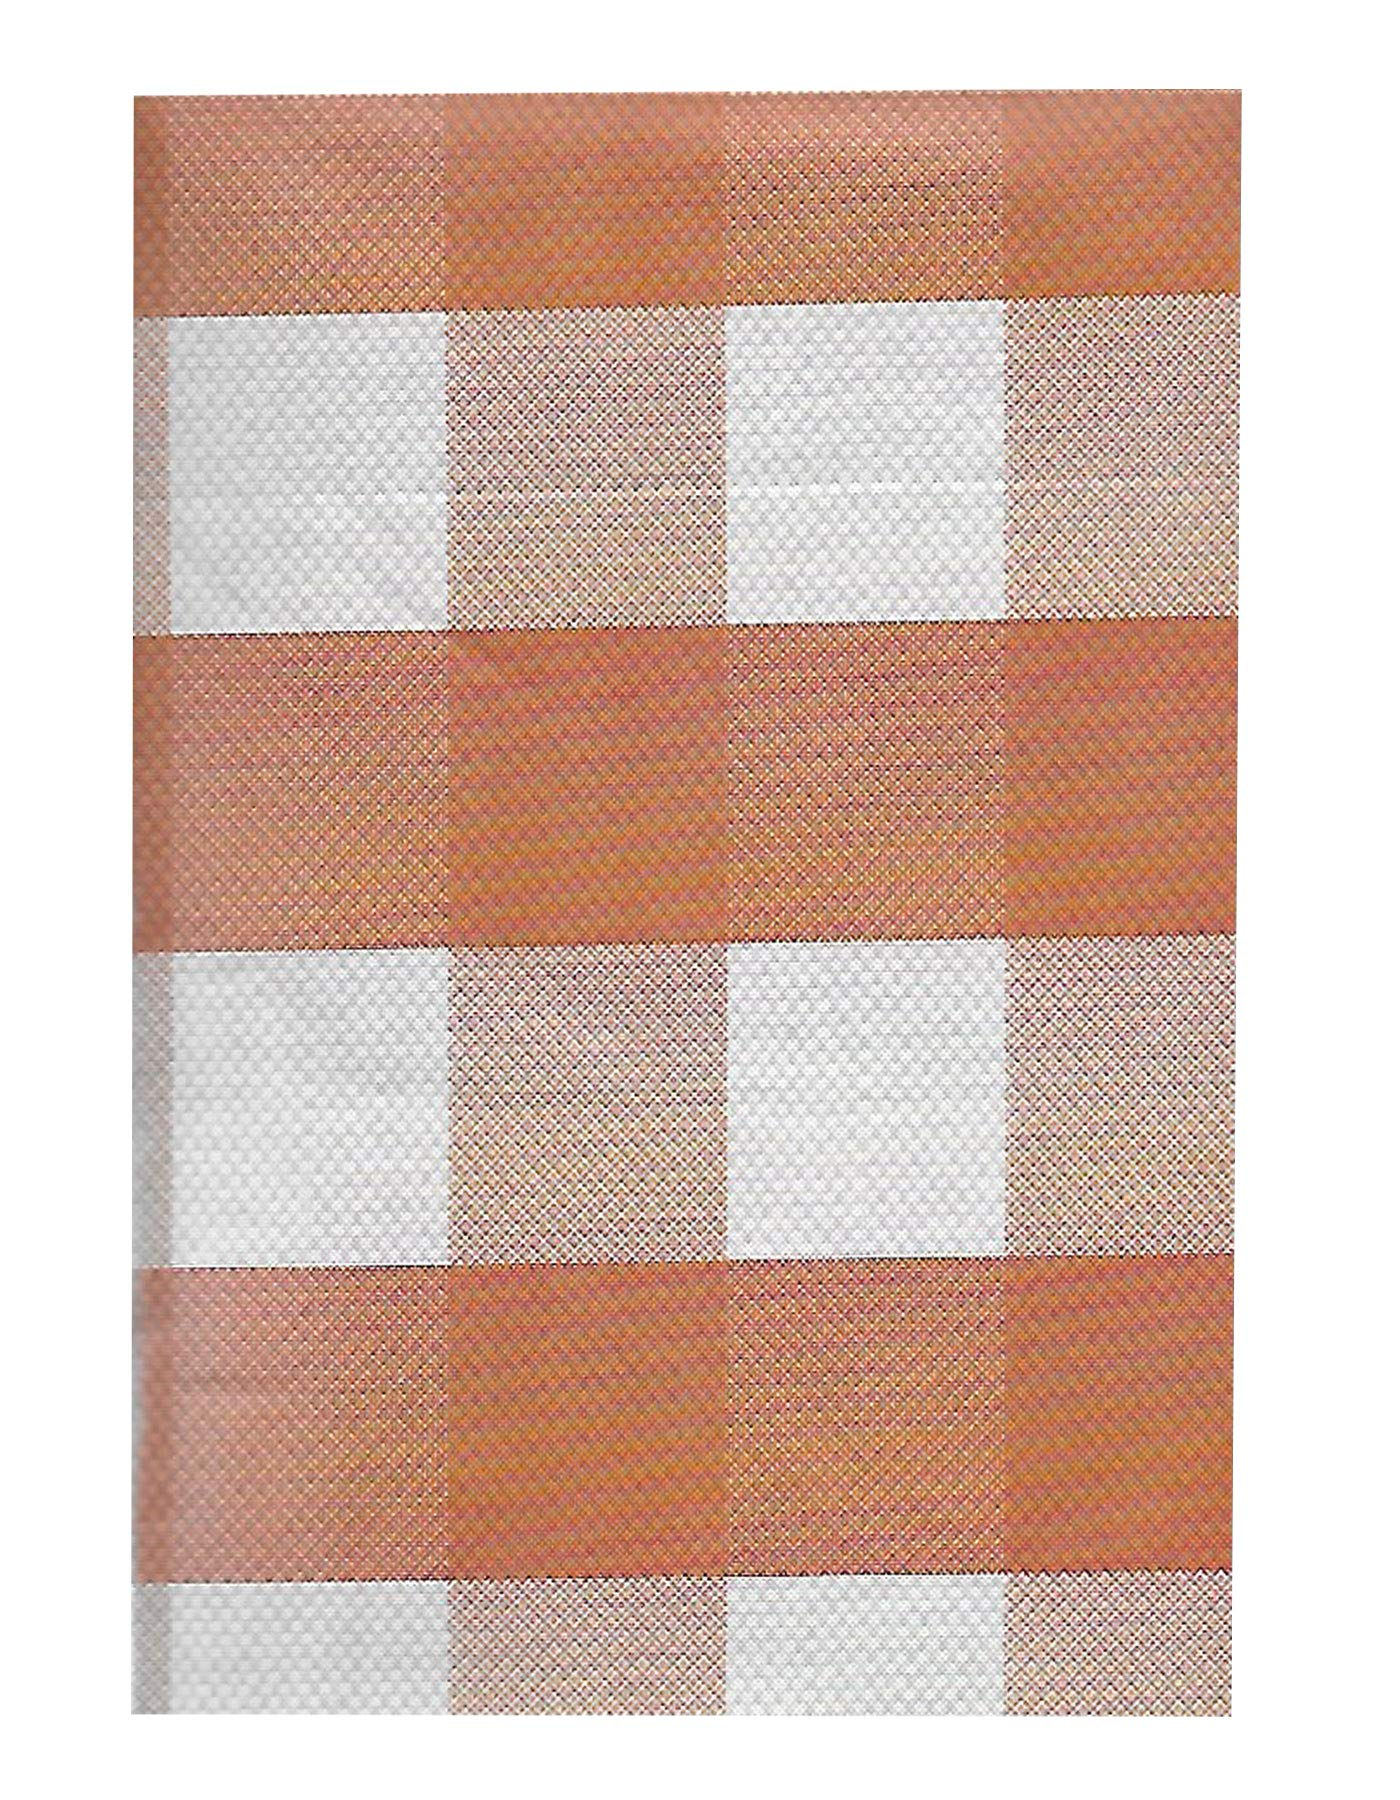 Newbridge Autumn Buffalo Plaid and Thanksgiving Print Vinyl Flannel Backed Tablecloth, Fall Rustic Cottage Check Tablecloth, 52 Inch x 52 Inch Square, Rust